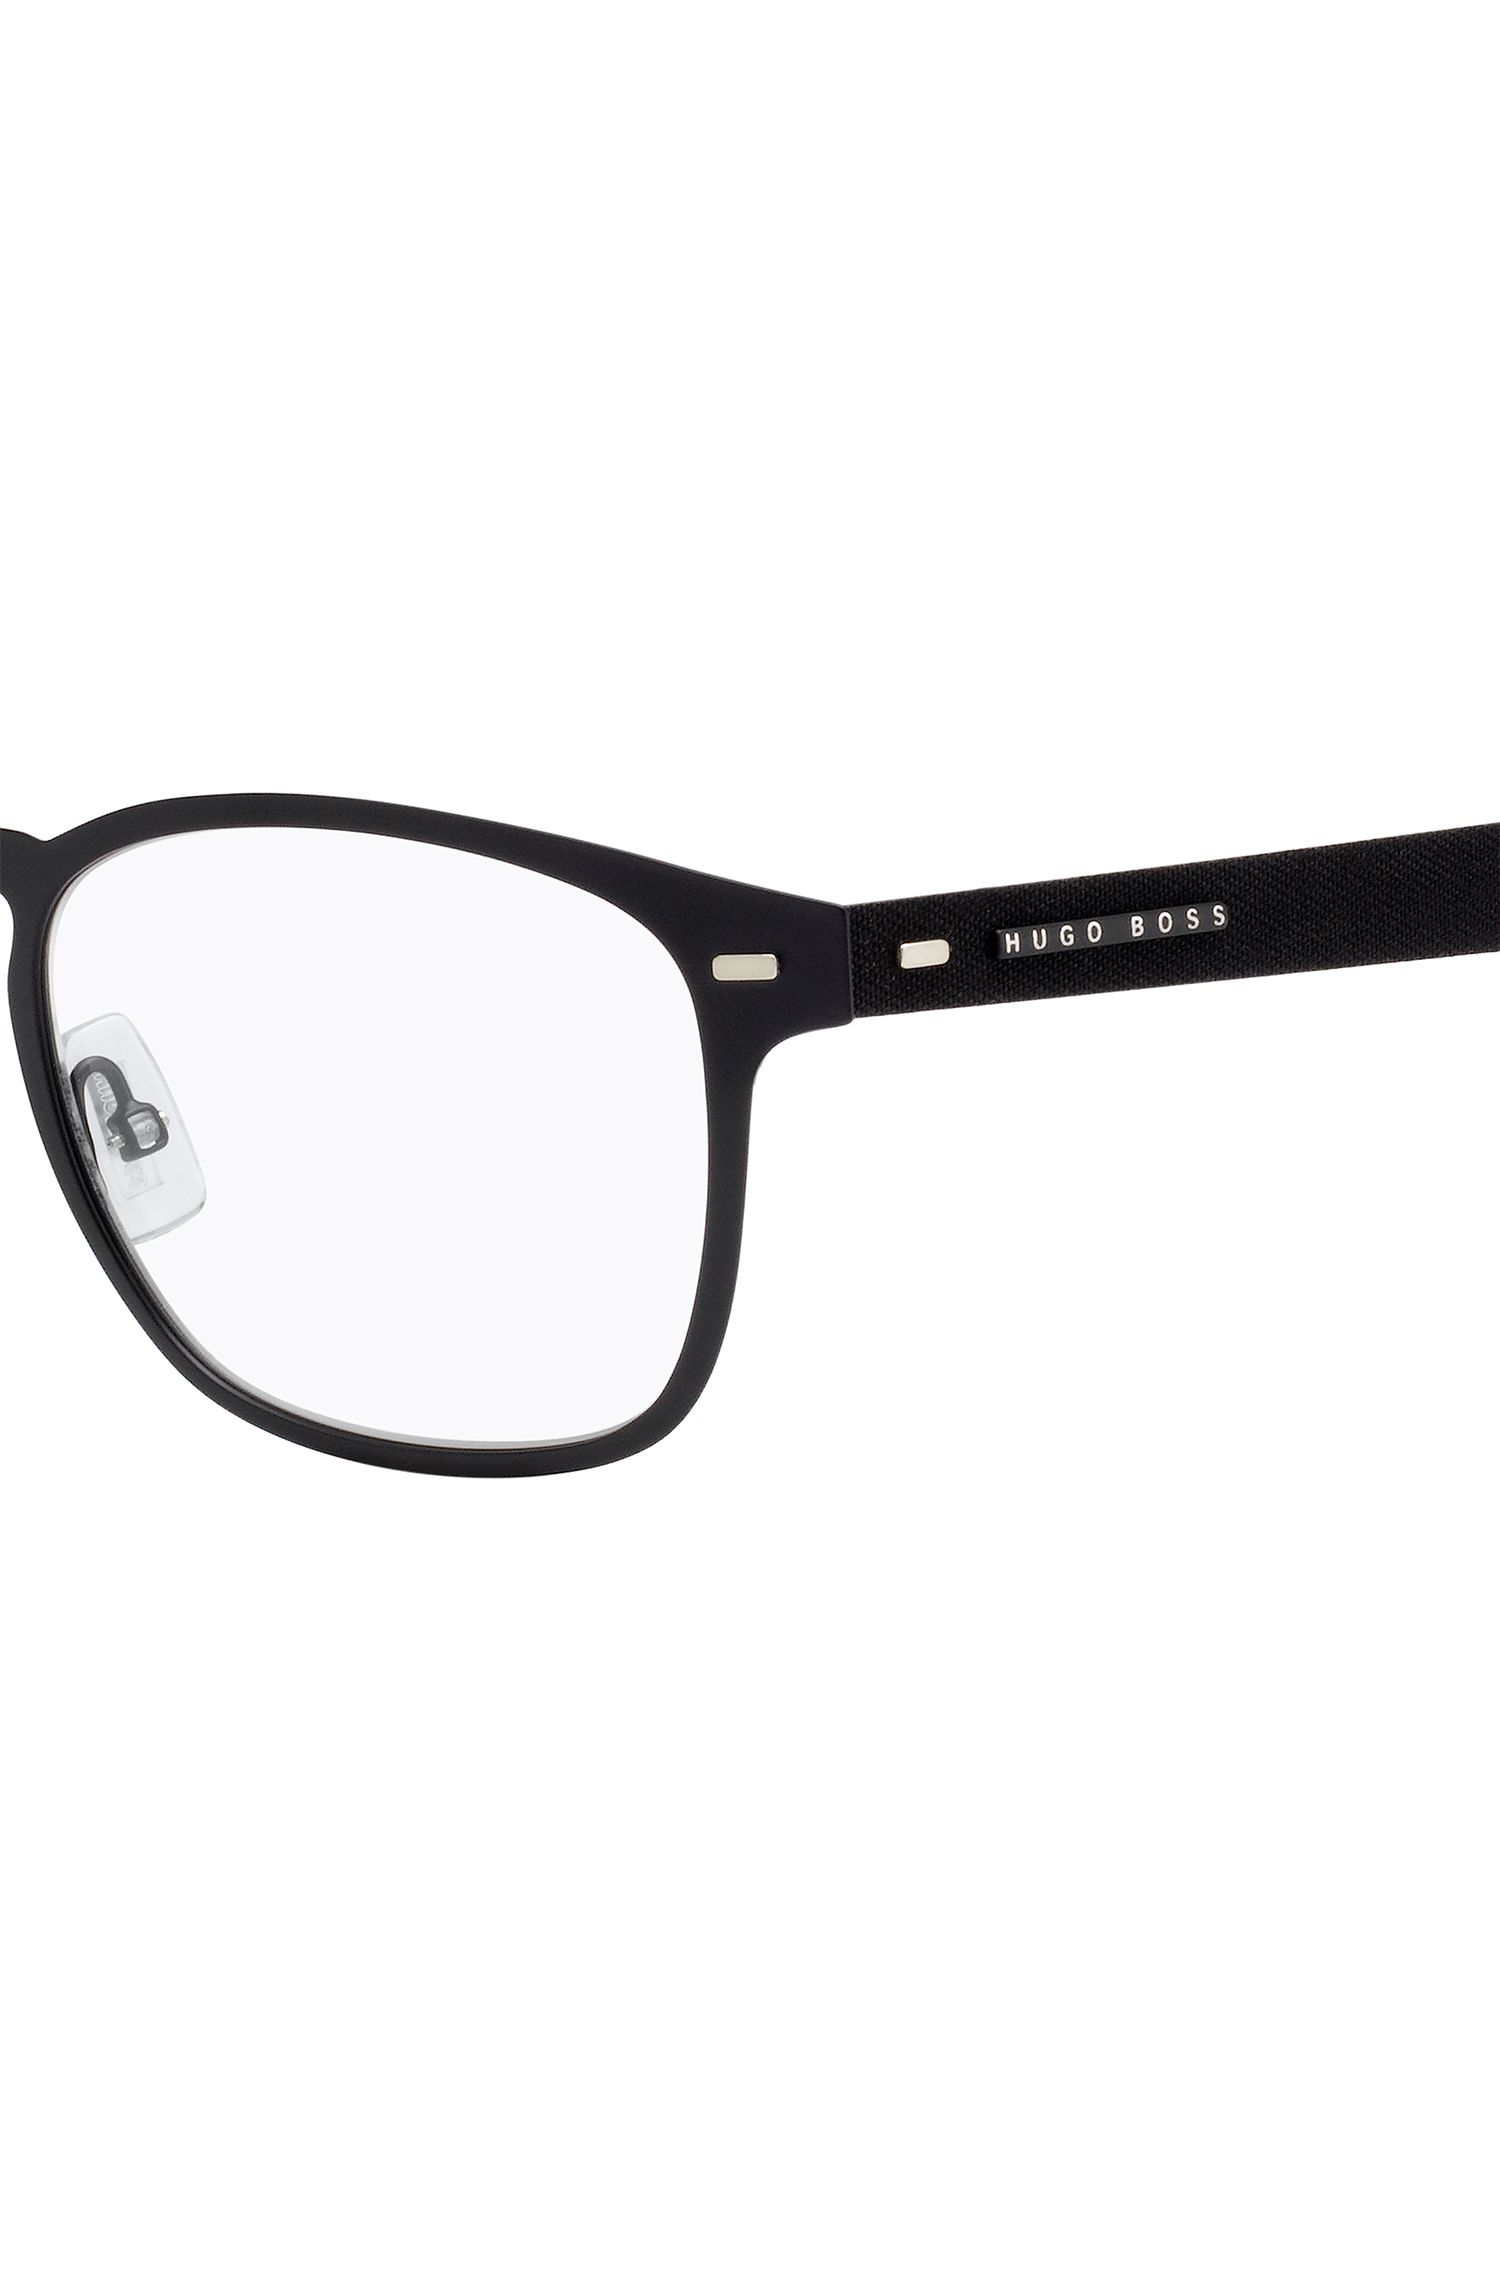 Lightweight glasses with black metal frames